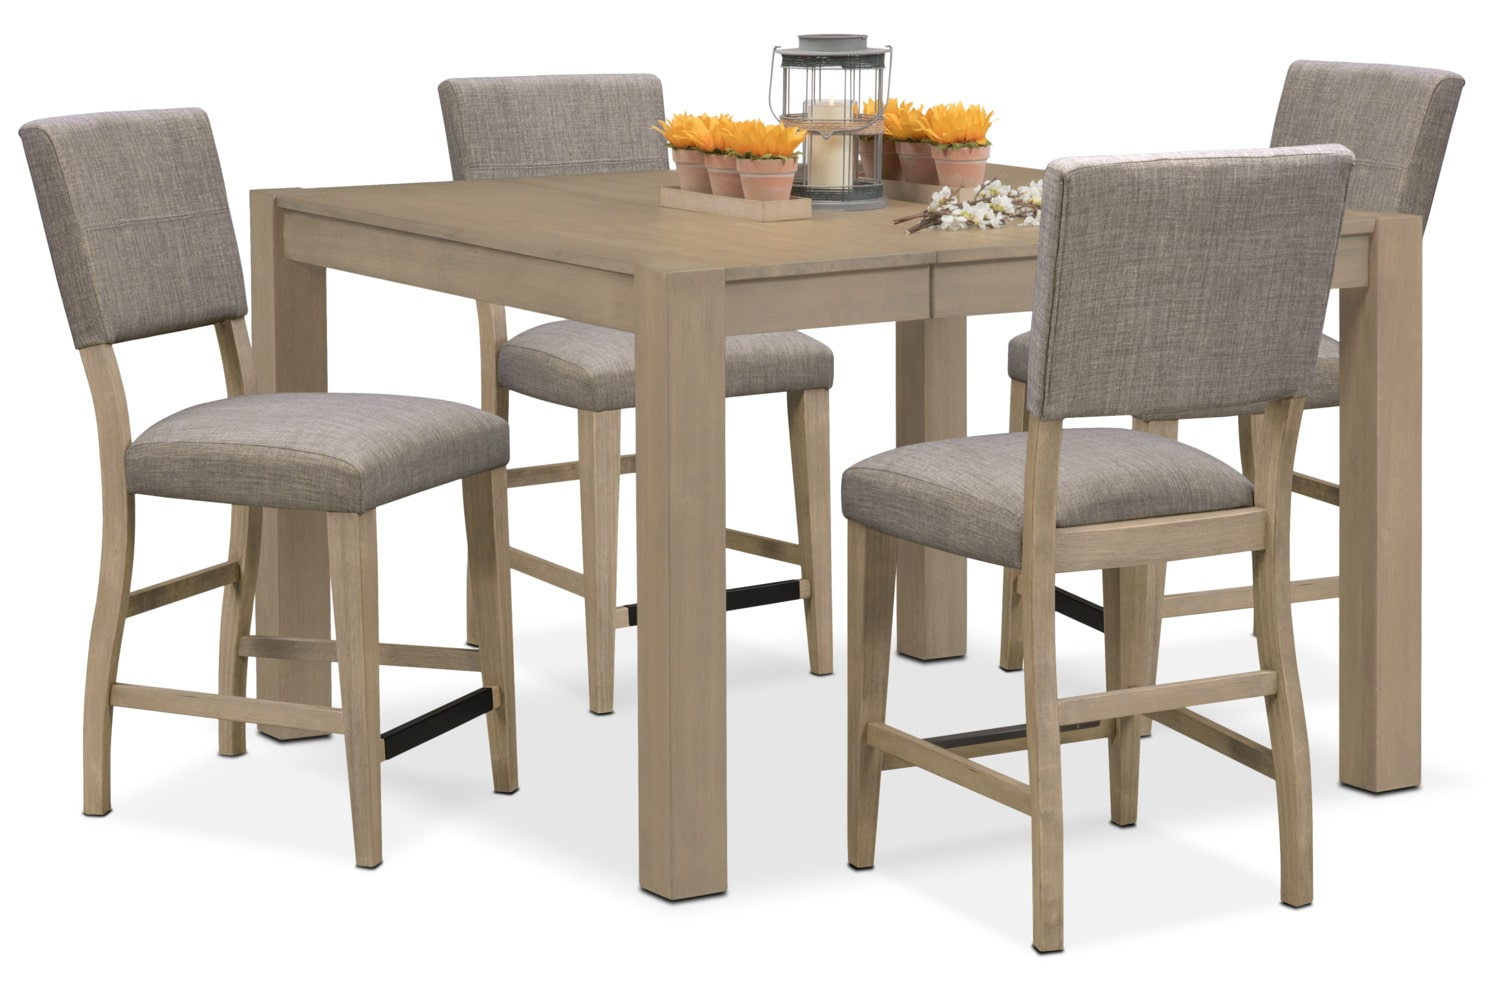 Tribeca Counter-Height Table and 4 Upholstered Side Chairs - Gray  sc 1 st  Value City Furniture & Tribeca Counter-Height Table - Gray | Value City Furniture and ...